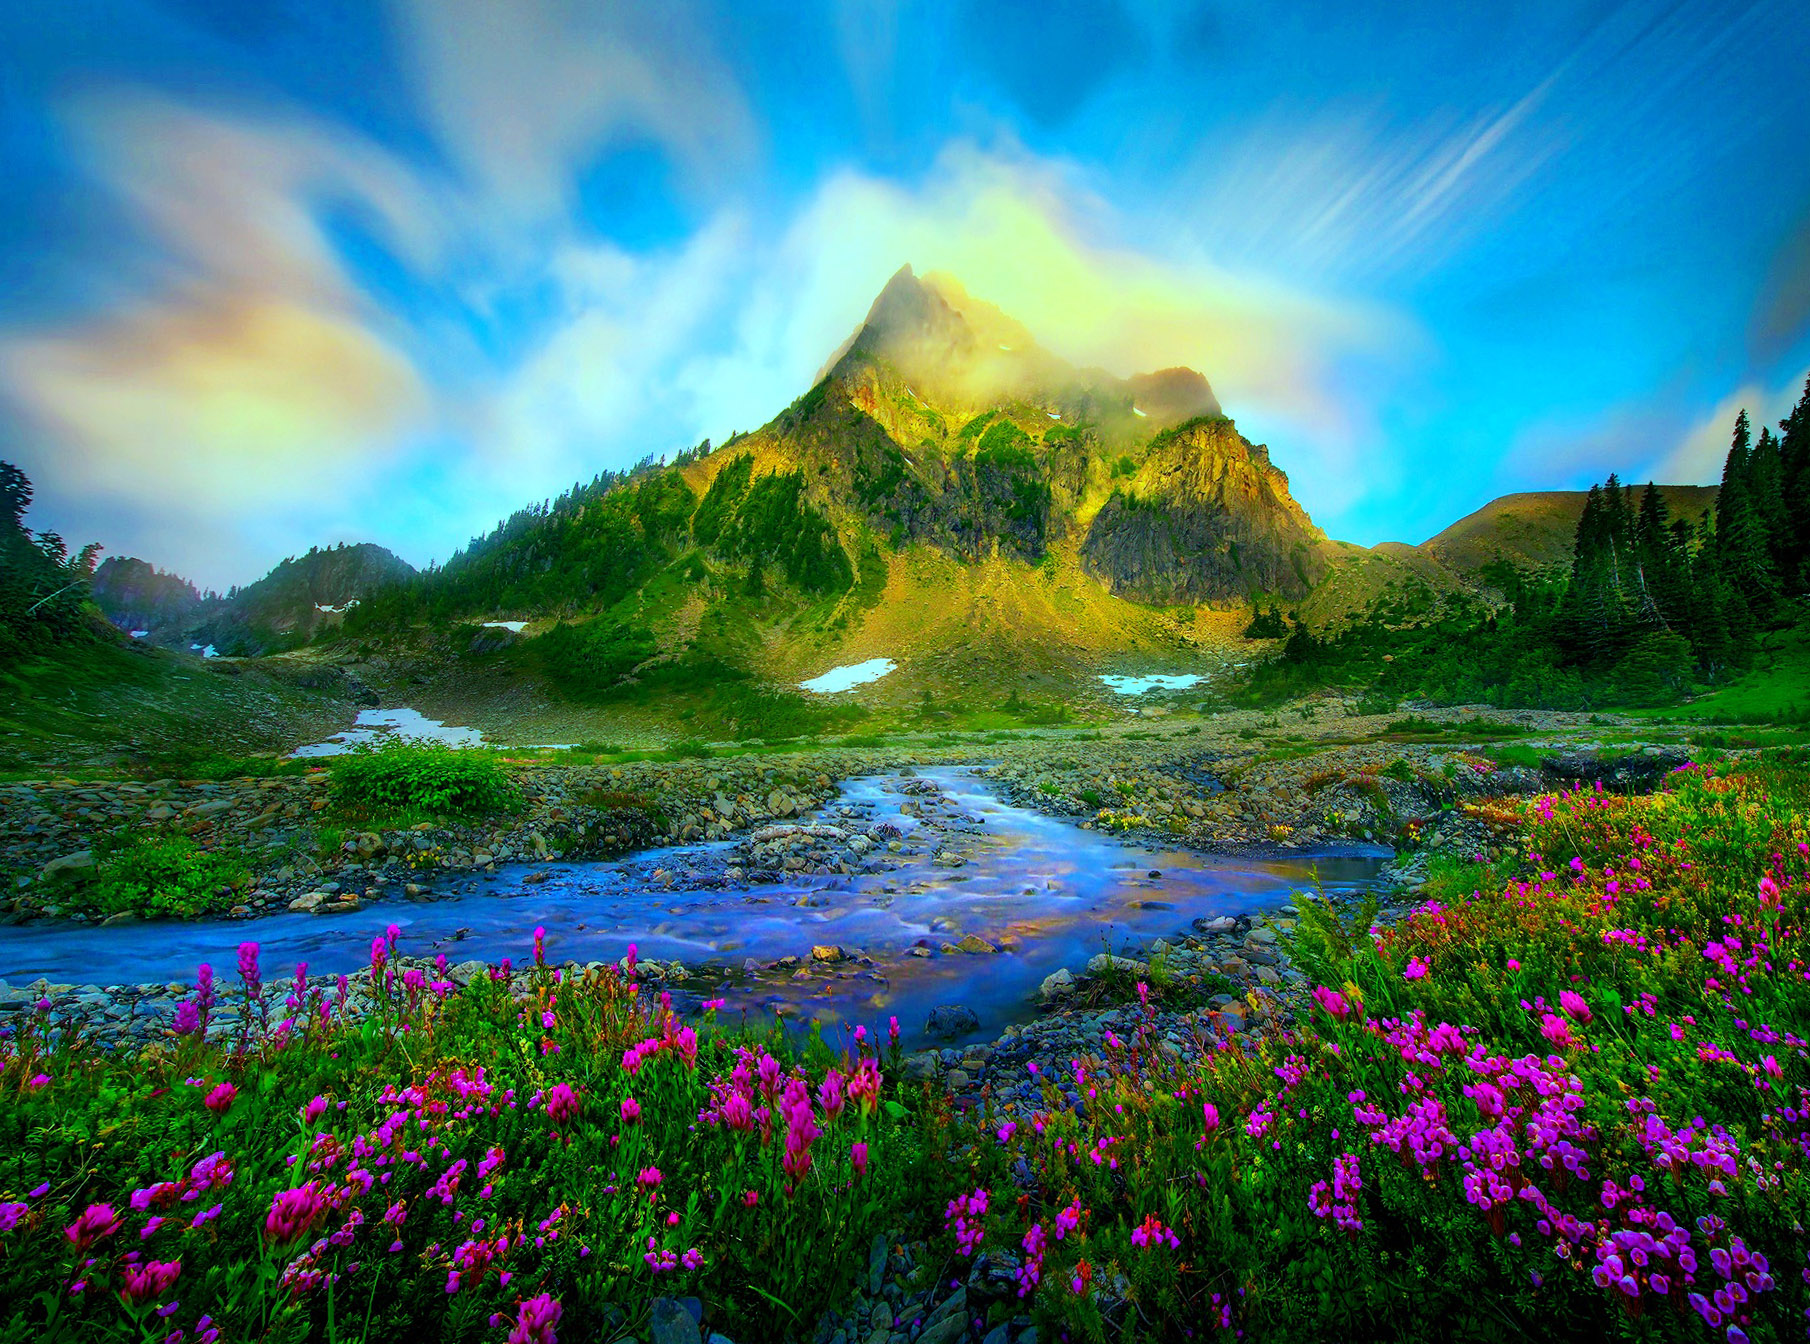 Springtime in the Mountains Wallpaper and Background Image ...